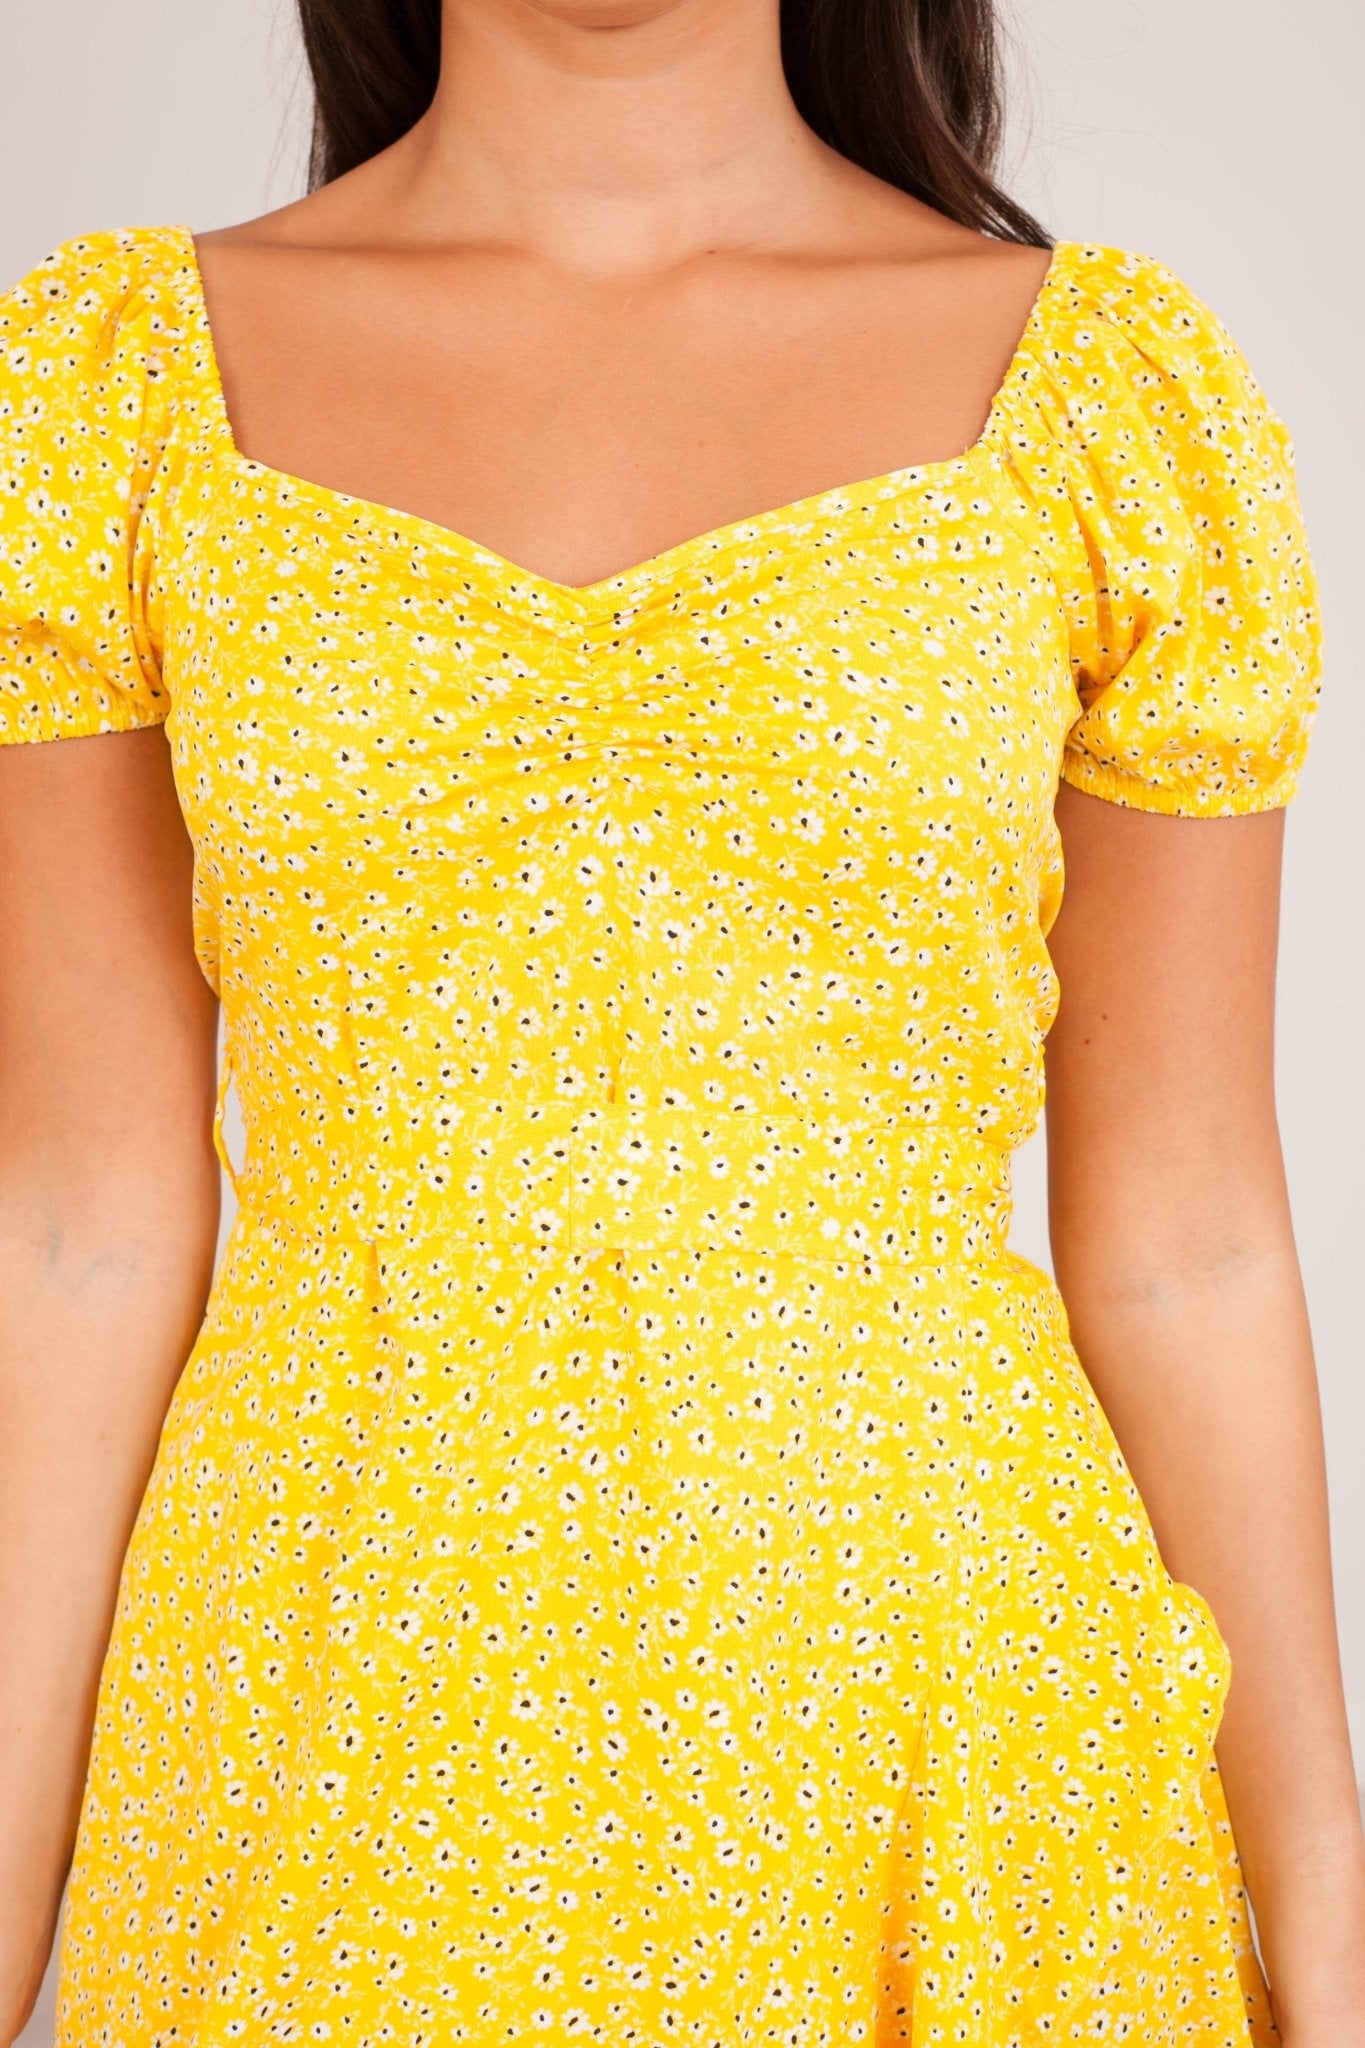 Nora Yellow Floral Dress - The Walk in Wardrobe